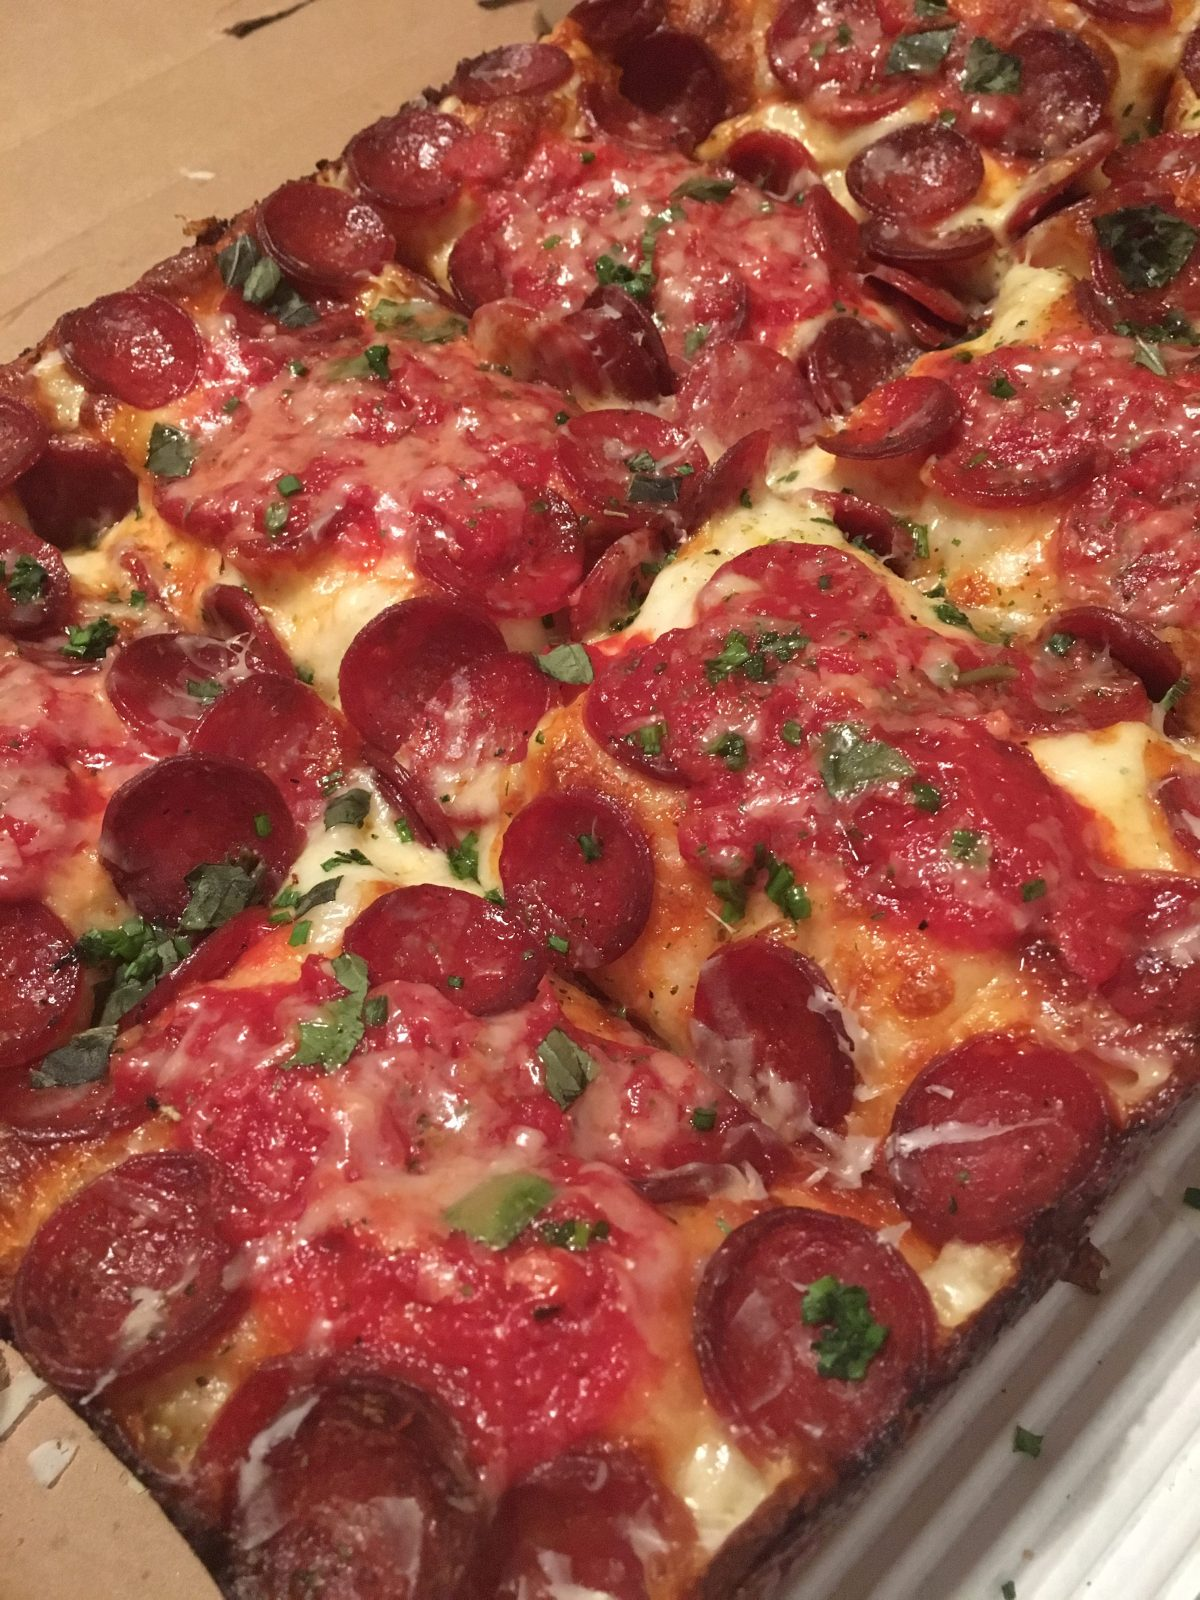 8Mile Detroit Style Pizza 9 Charles St W, Toronto, ON M4Y 1R4